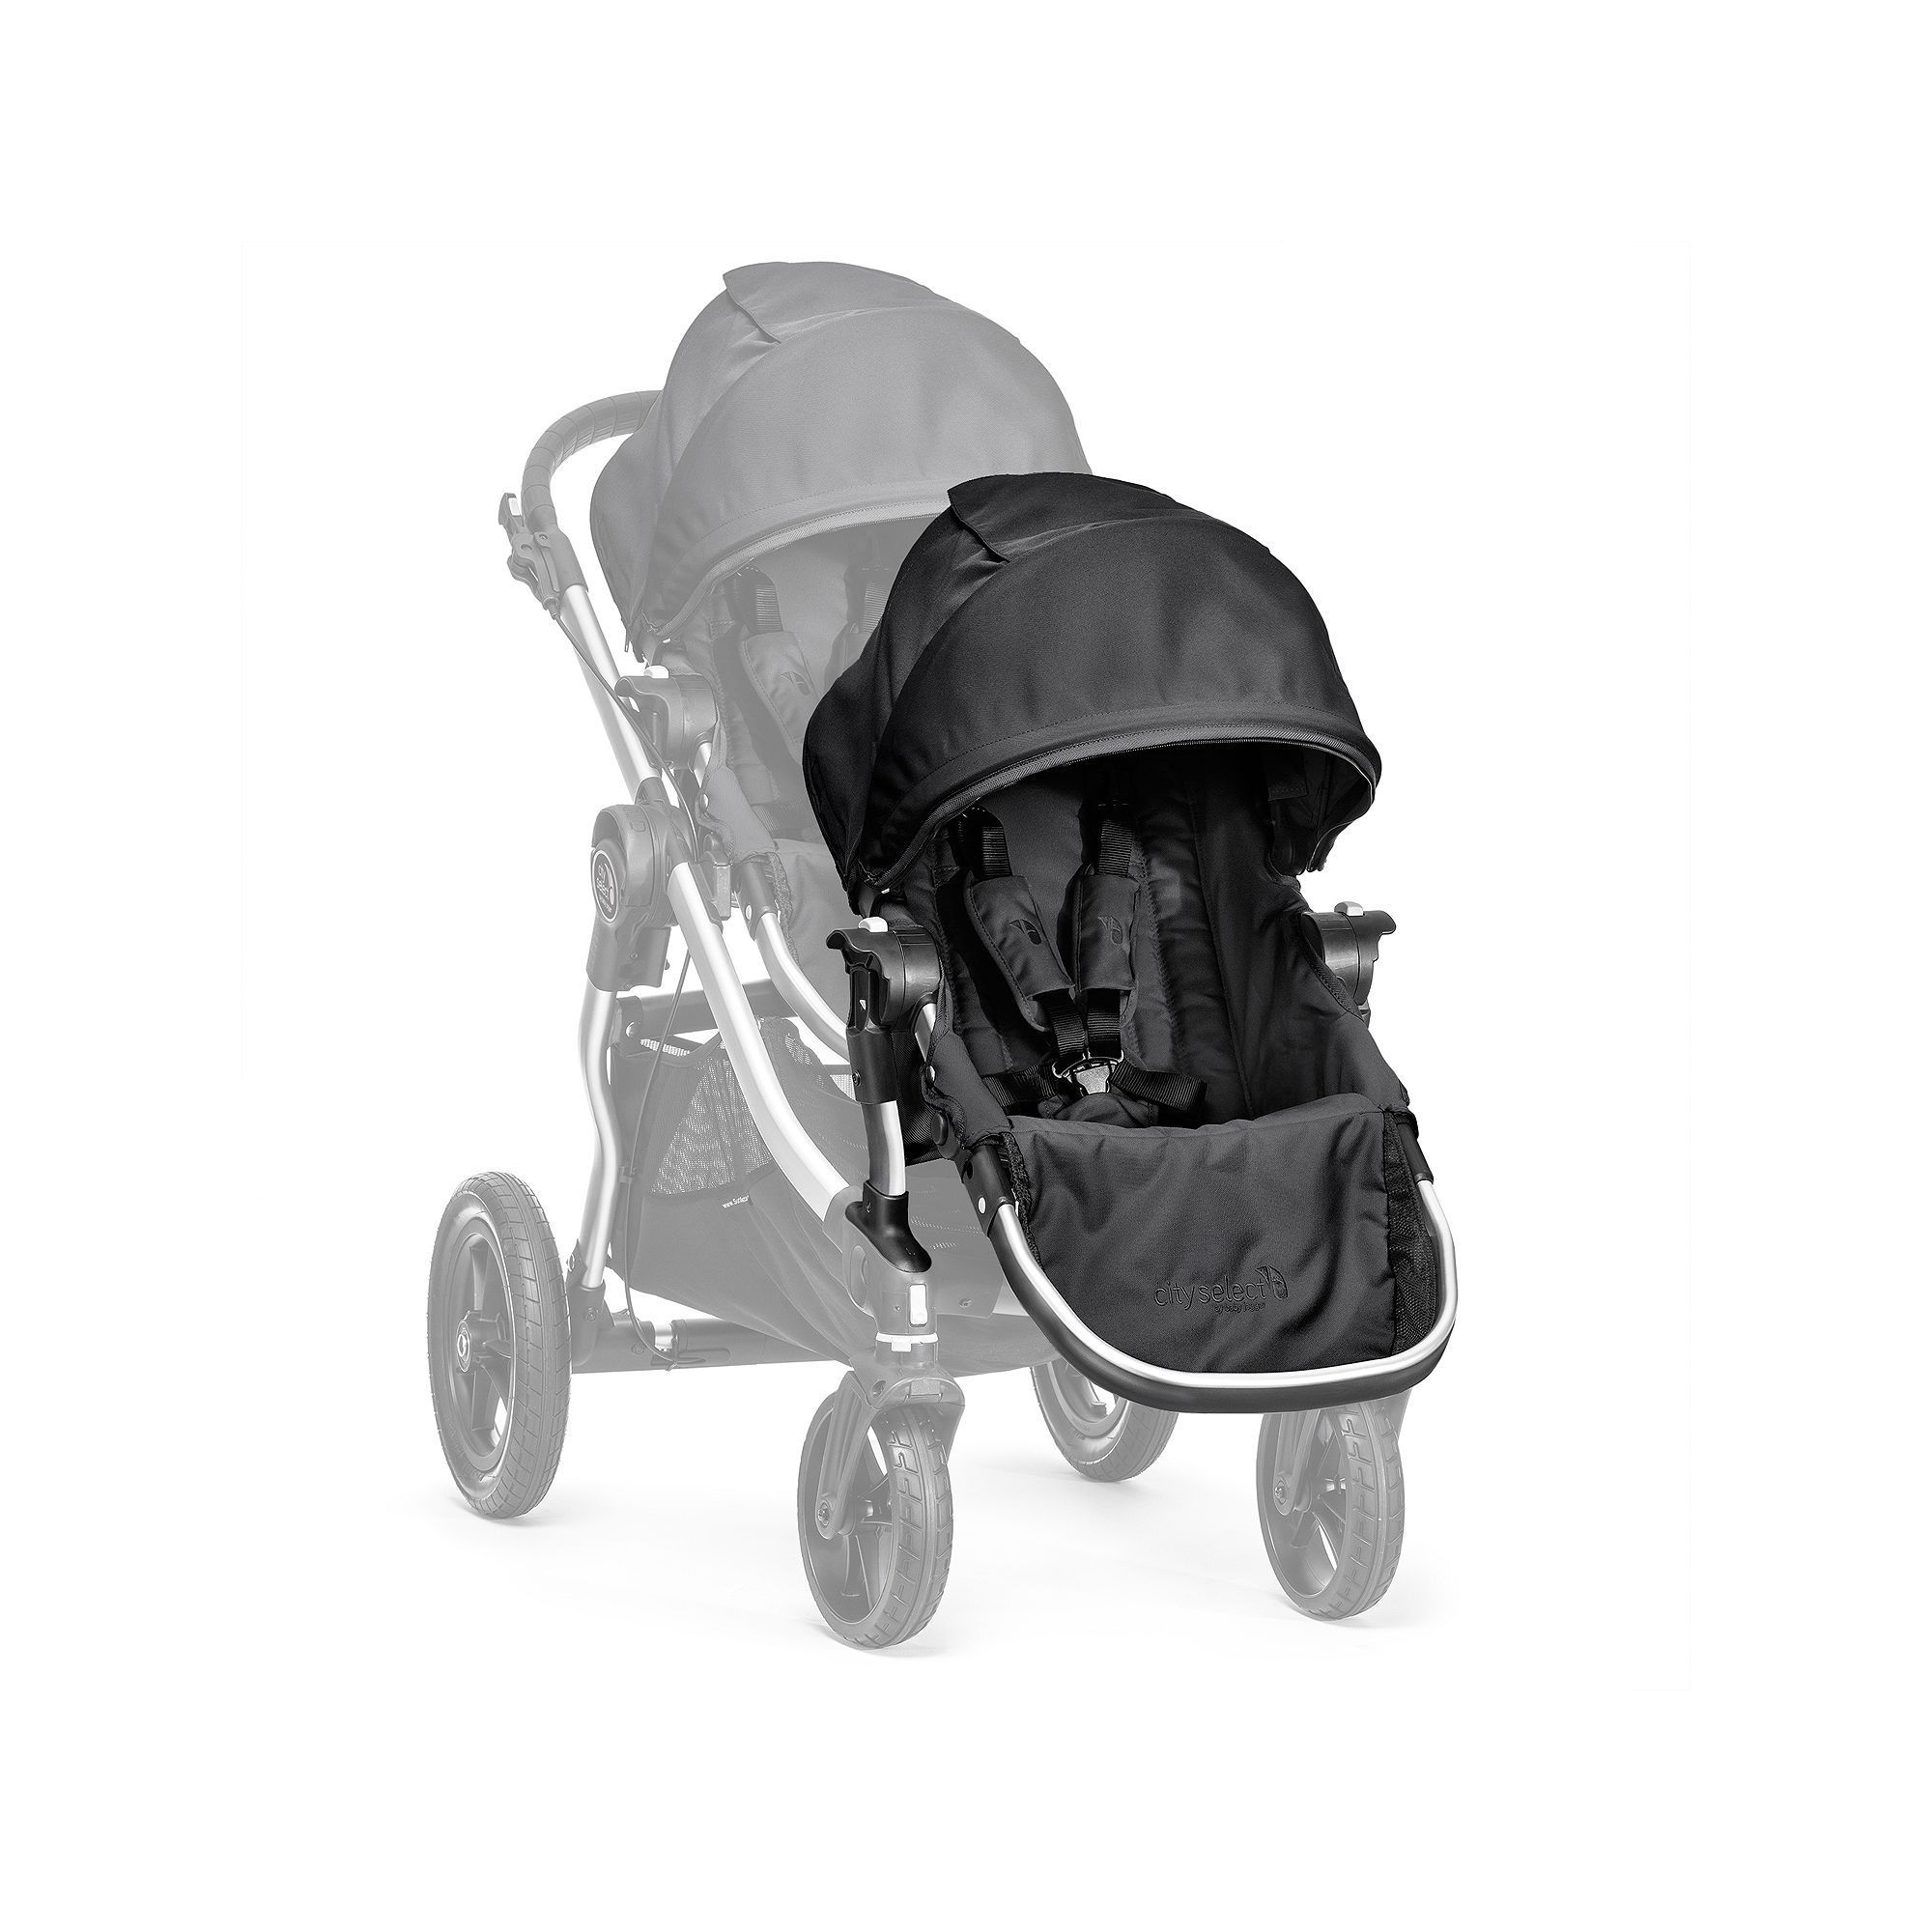 Baby Jogger City Select Second Seat (With images) Baby